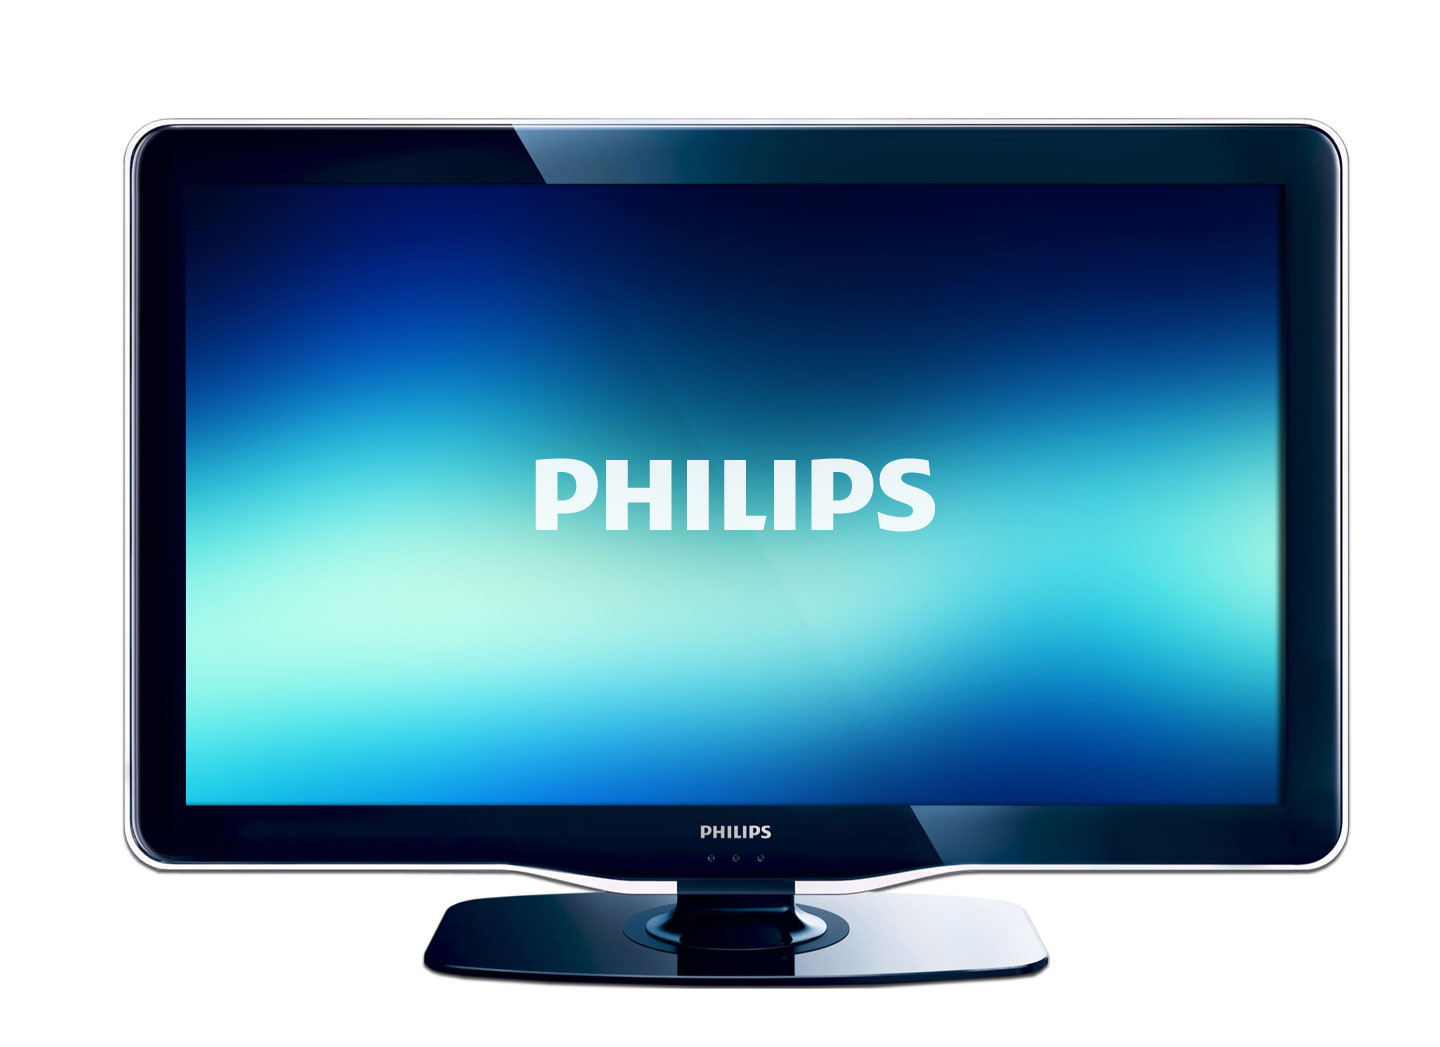 Philips reparatur